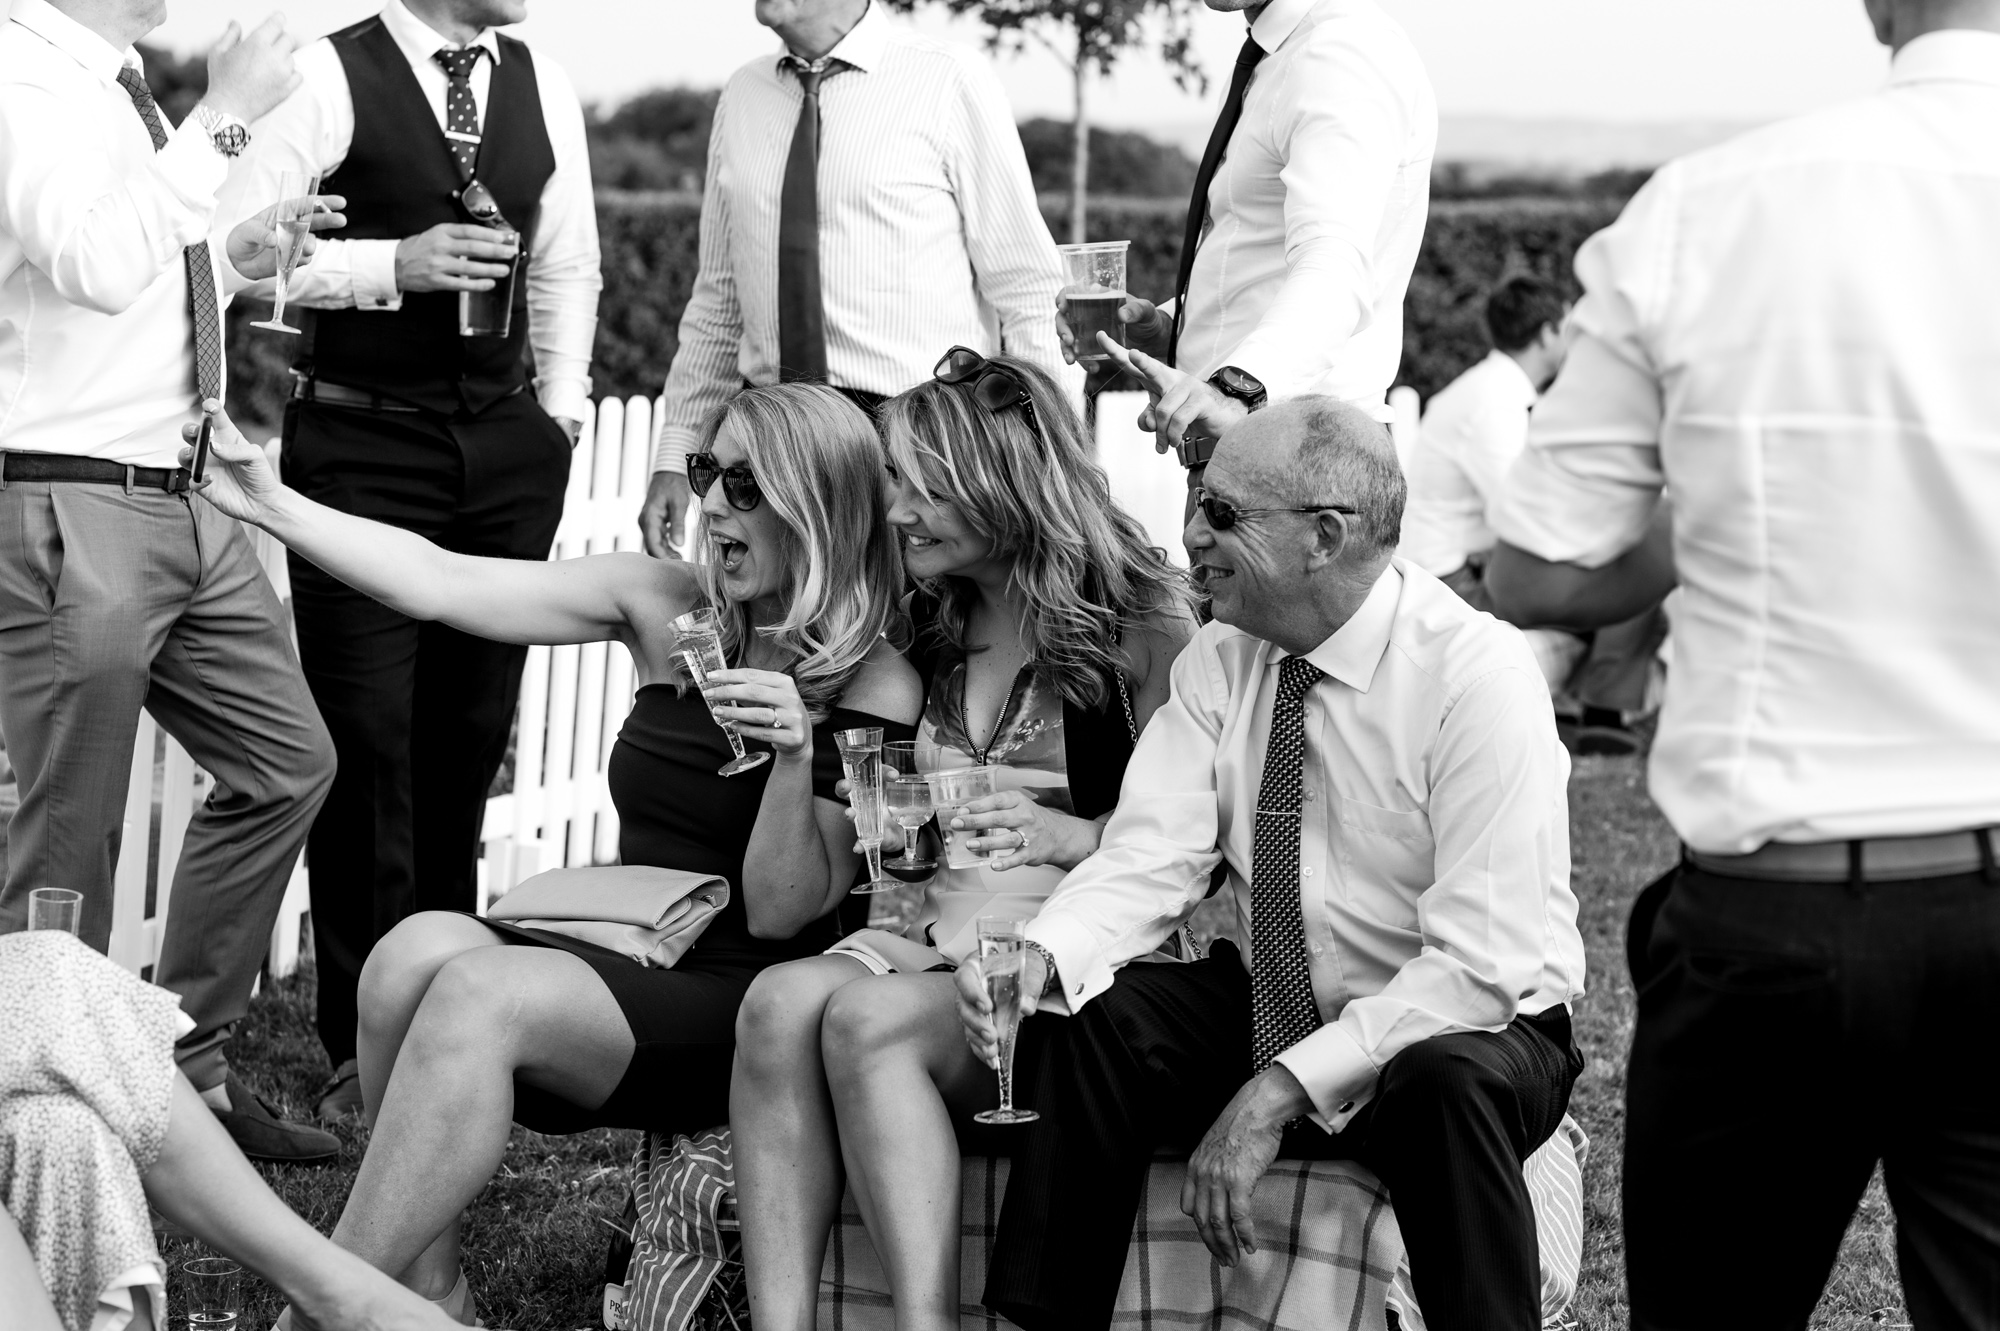 Cotswold Wedding Photography 11.09.1837.jpg